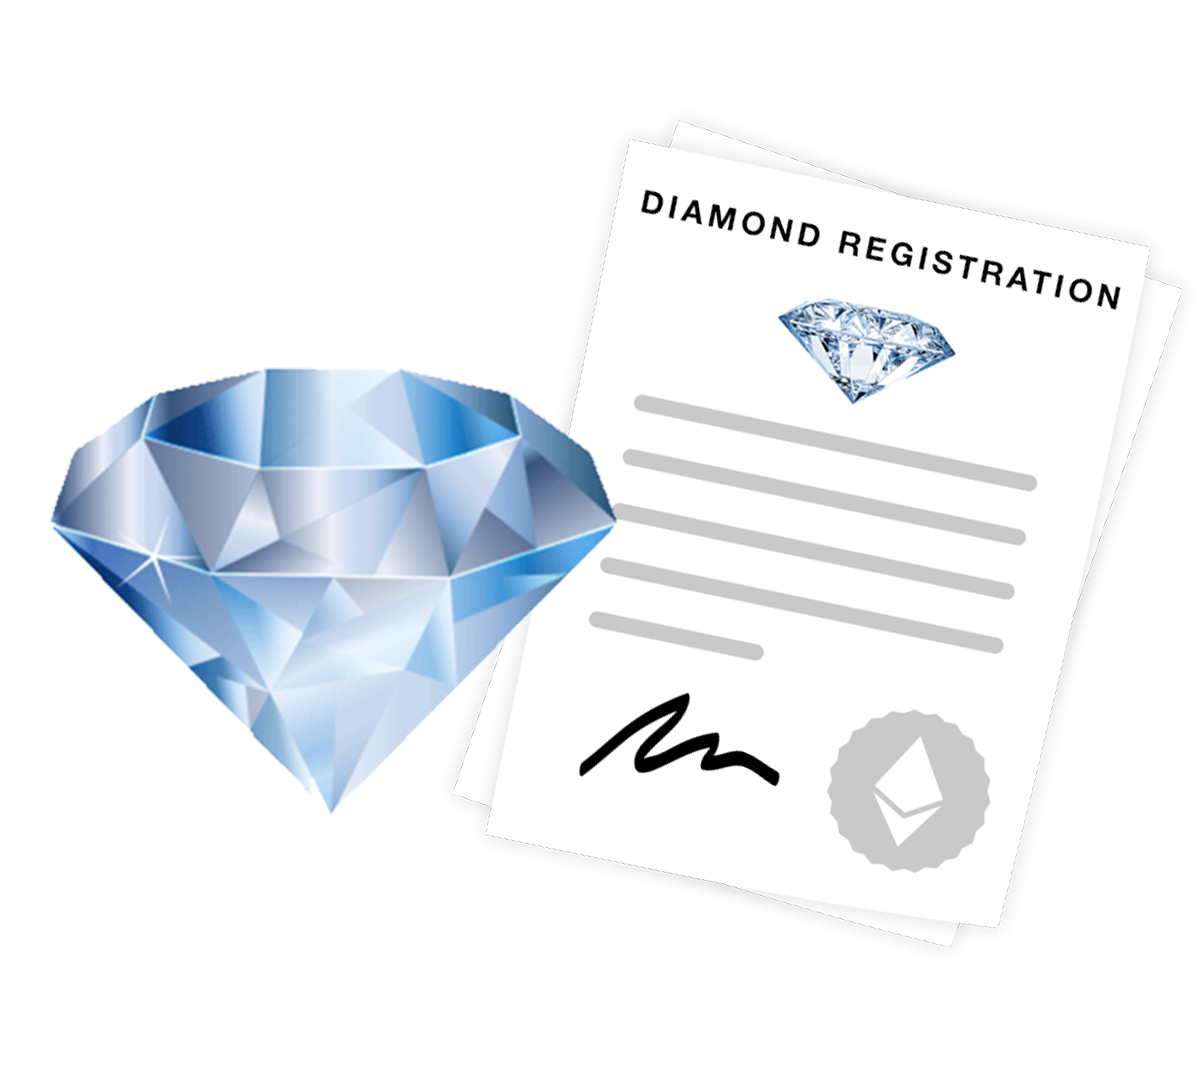 Diamon Registration